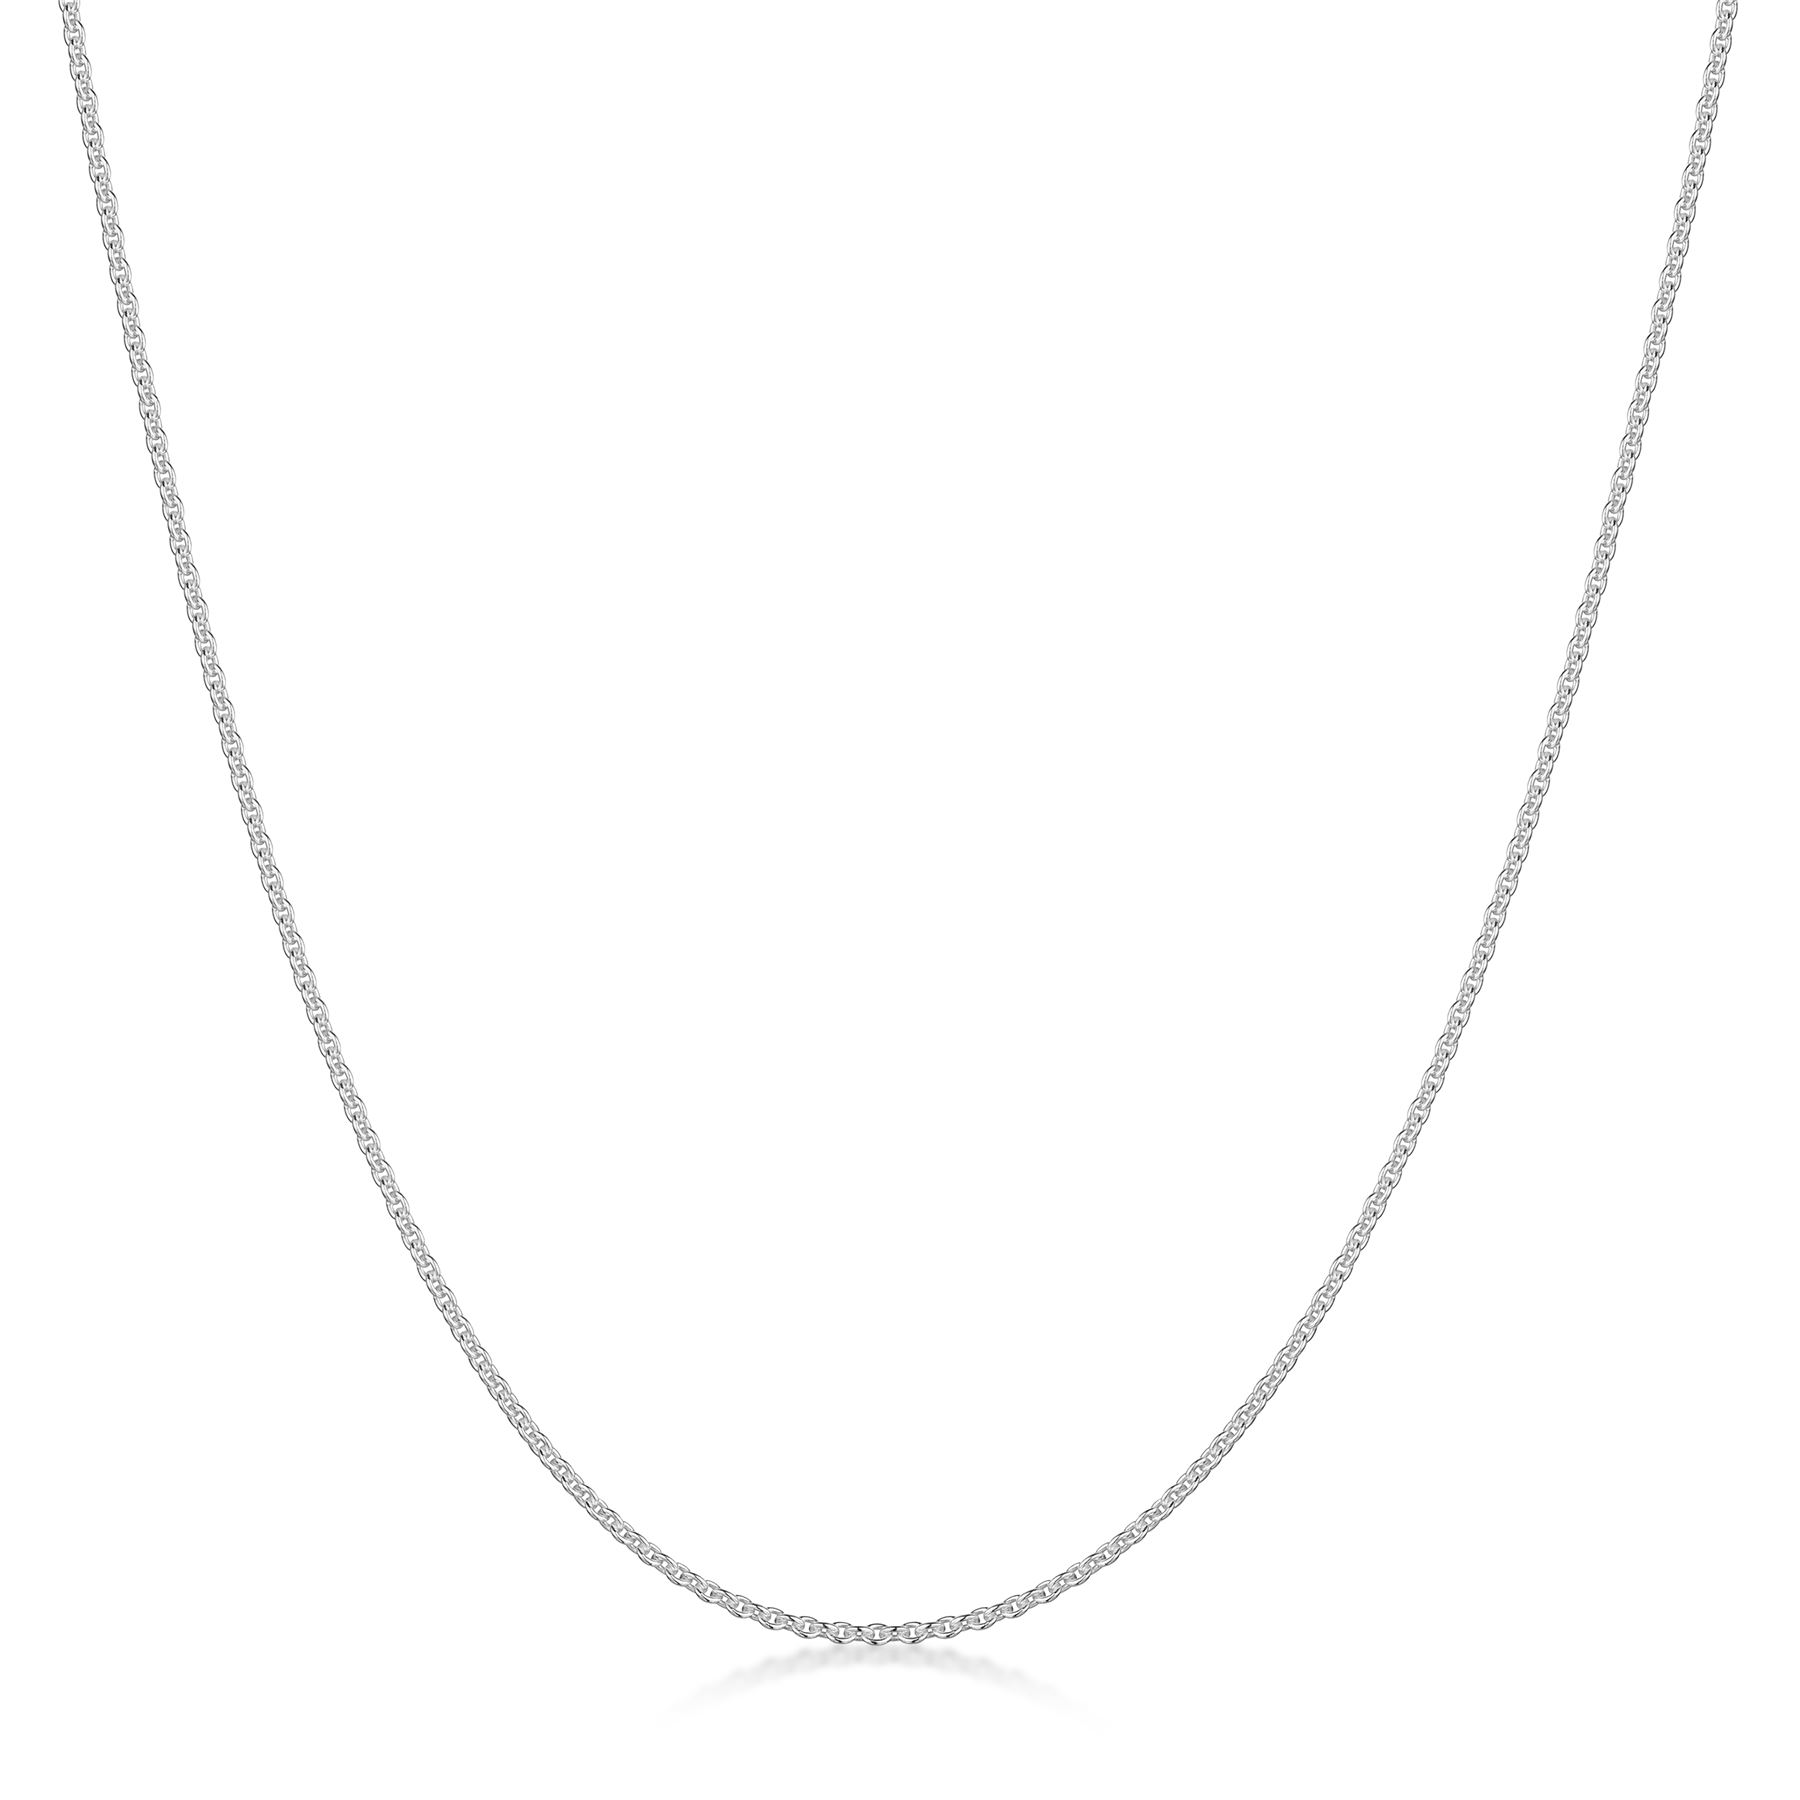 Amberta-Jewelry-Solid-Real-925-Sterling-Silver-Necklace-Chain-Made-in-Italy thumbnail 3